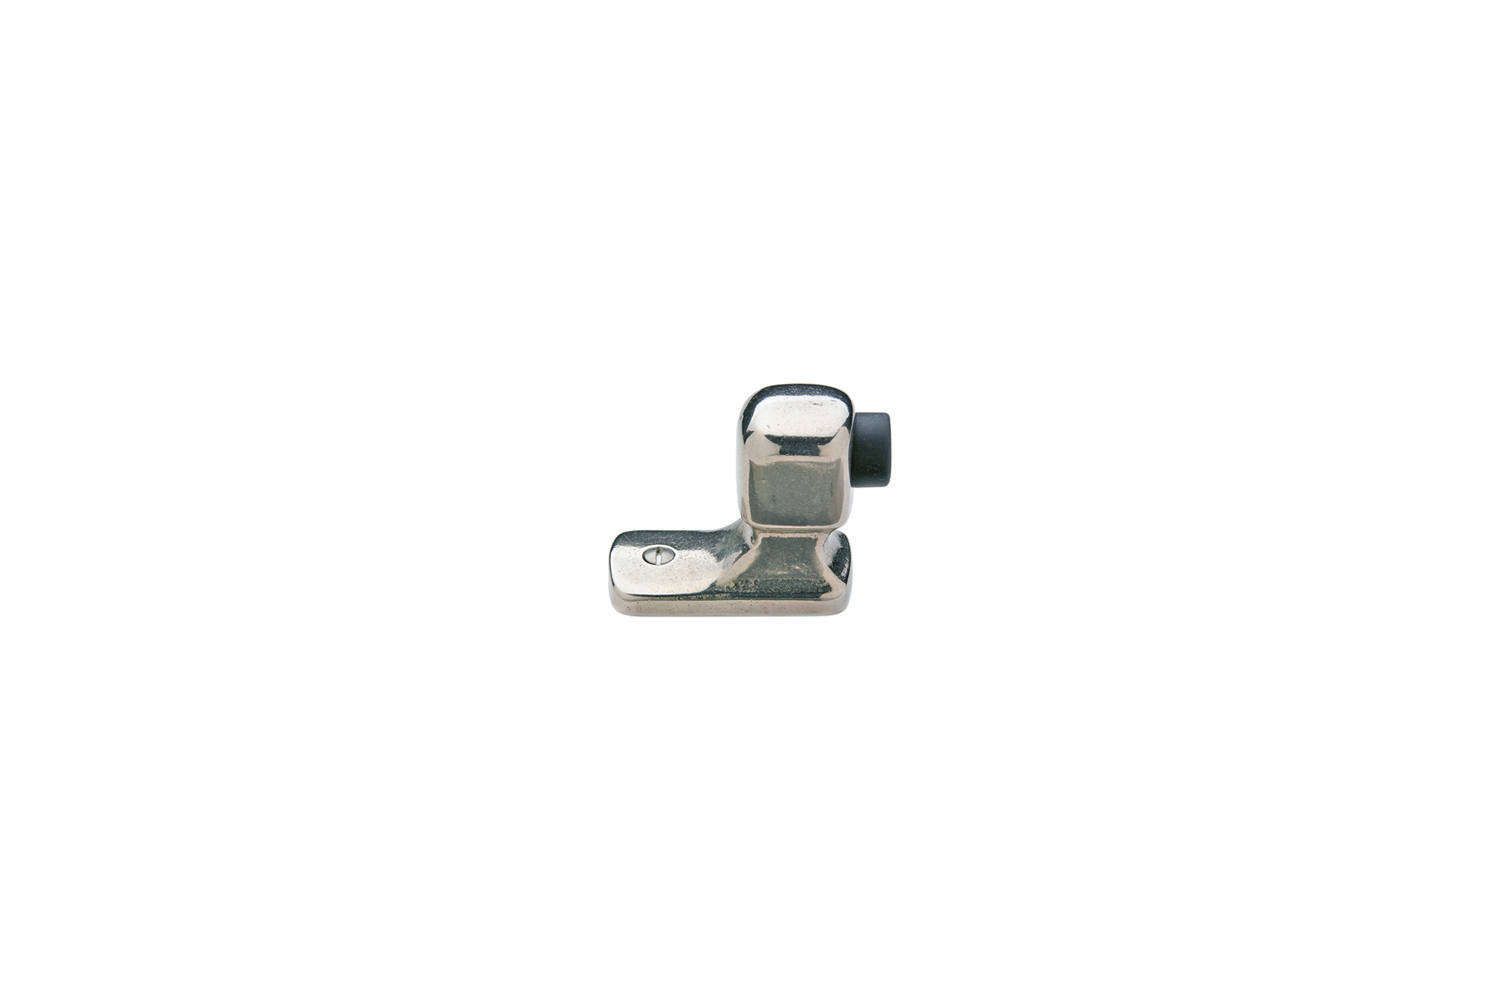 From Rocky Mountain Hardware, the Short Floor Door Stop, shown in White Bronze Light (WL), is available directly through Rocky Mountain Hardware. Contact for price and ordering information.